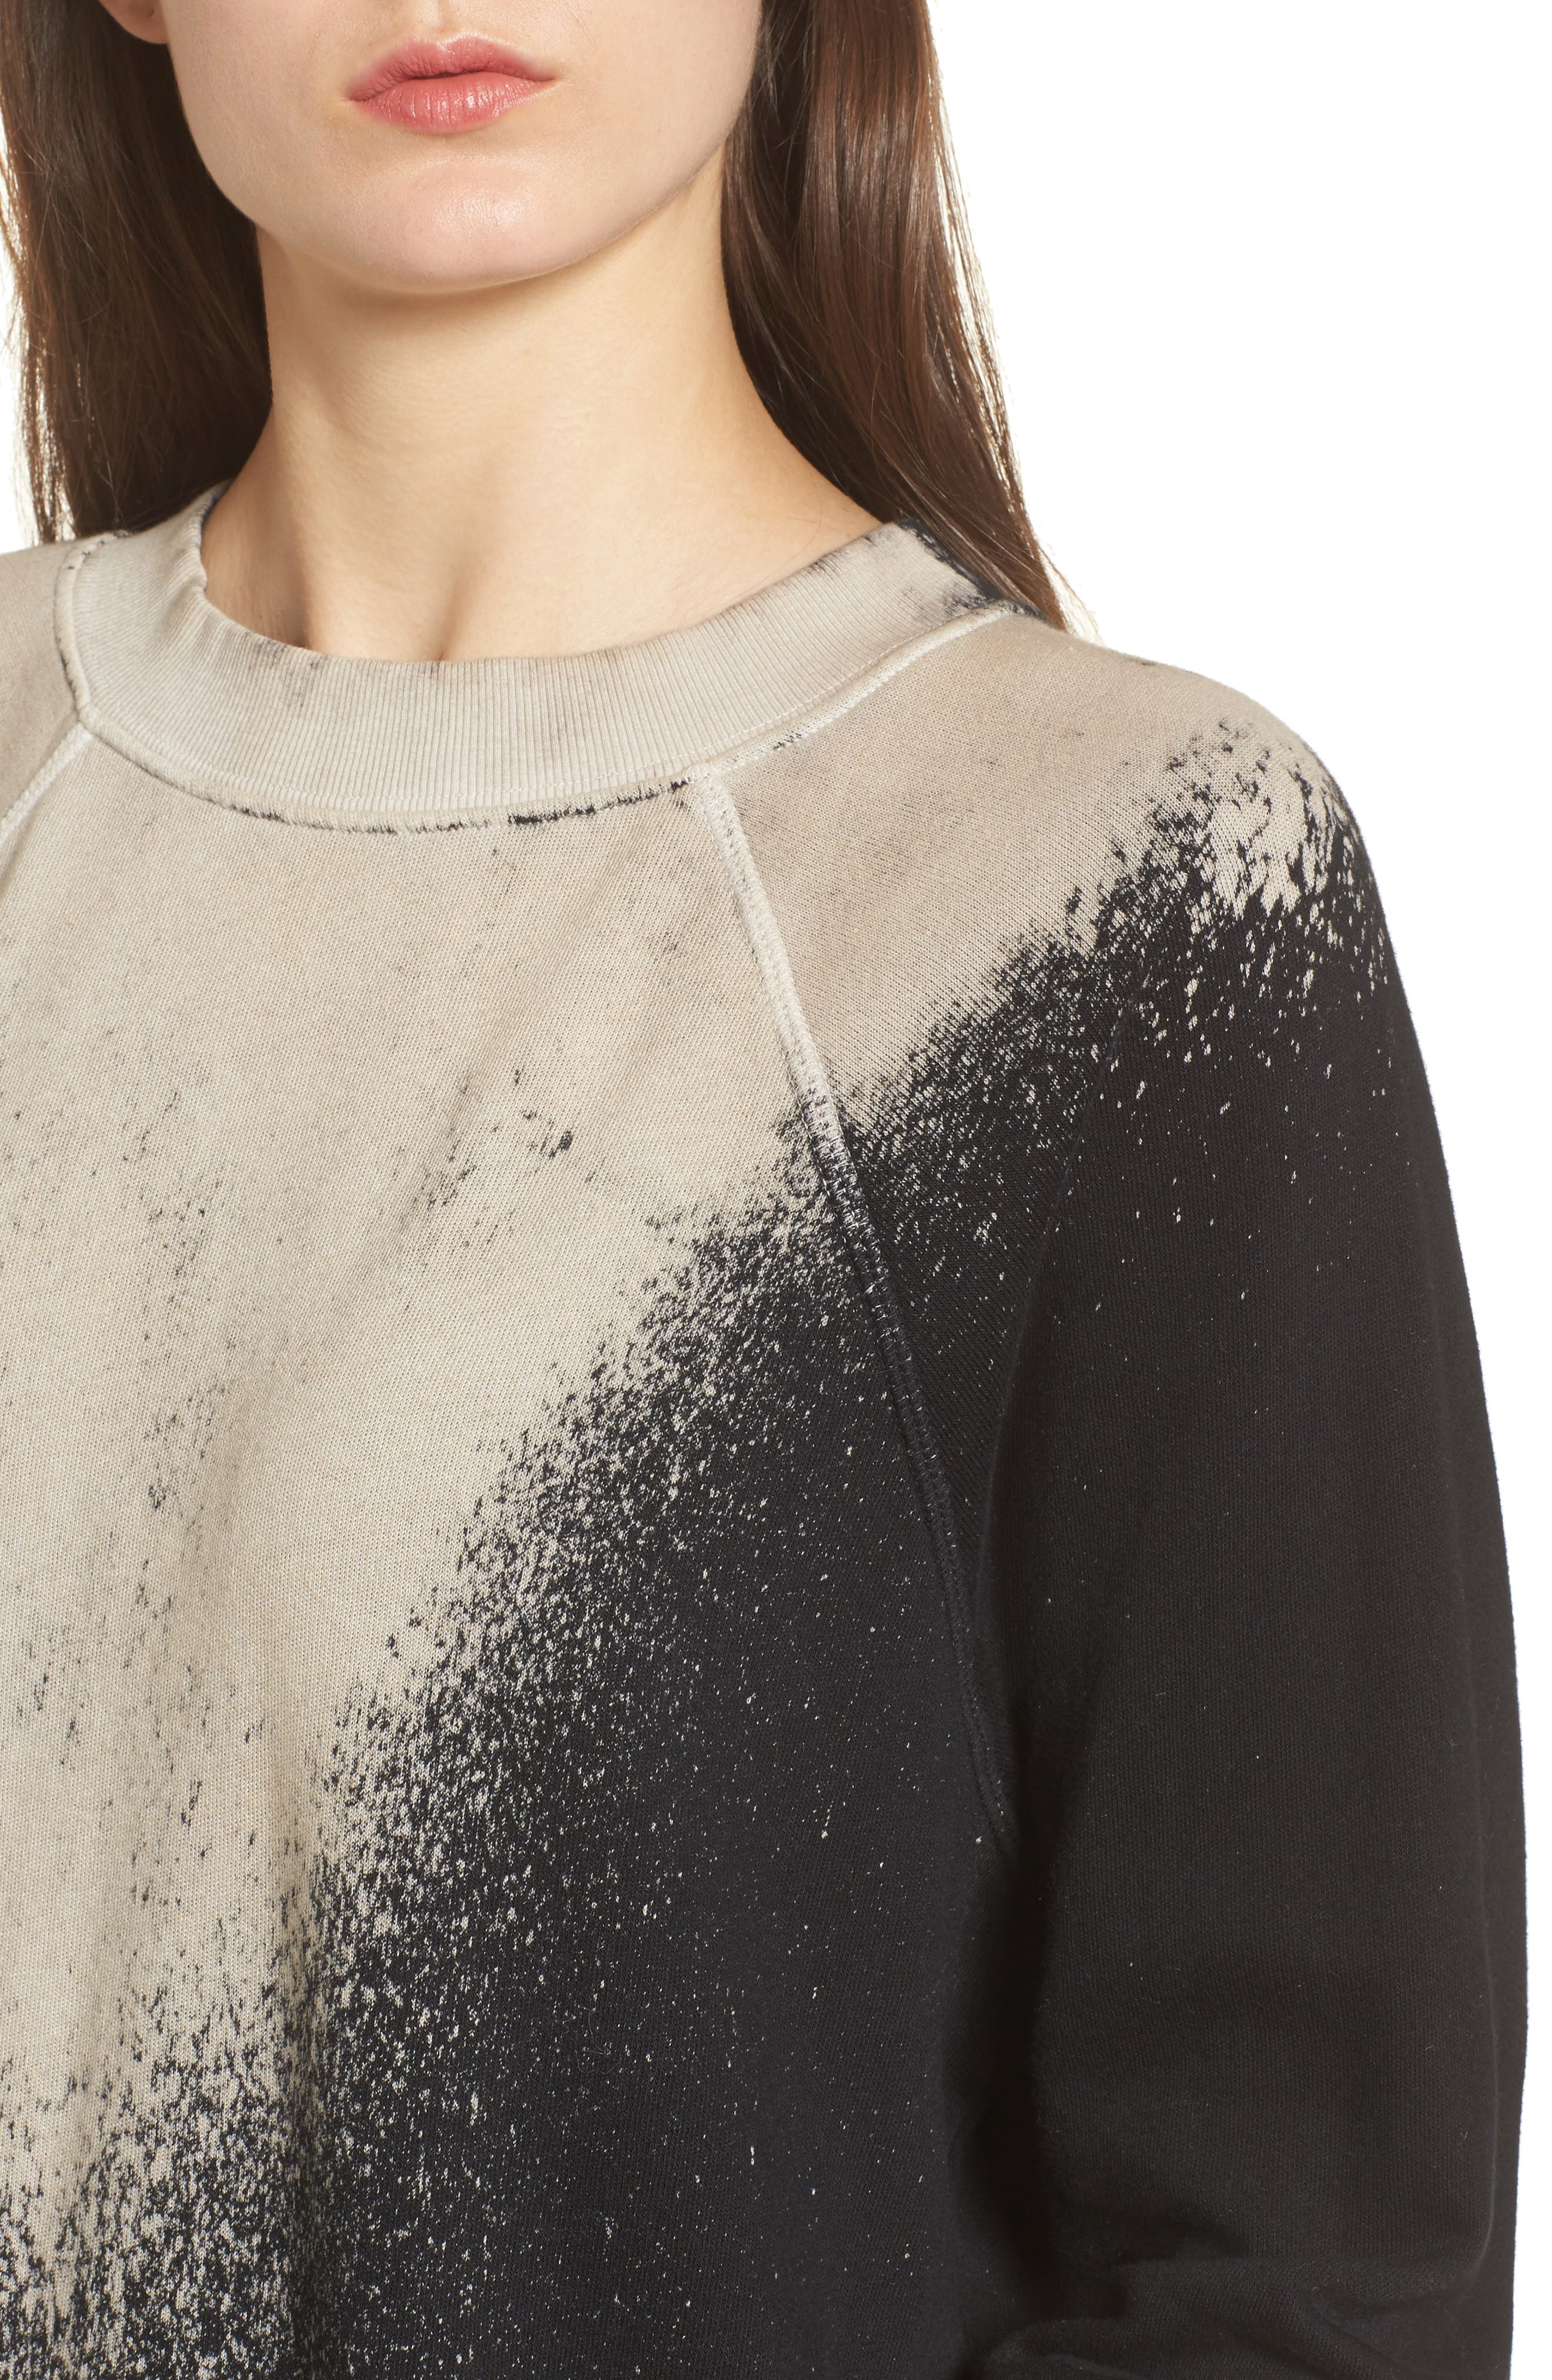 Stardust - Sommers Sweatshirt,                             Alternate thumbnail 4, color,                             Stardust Wash